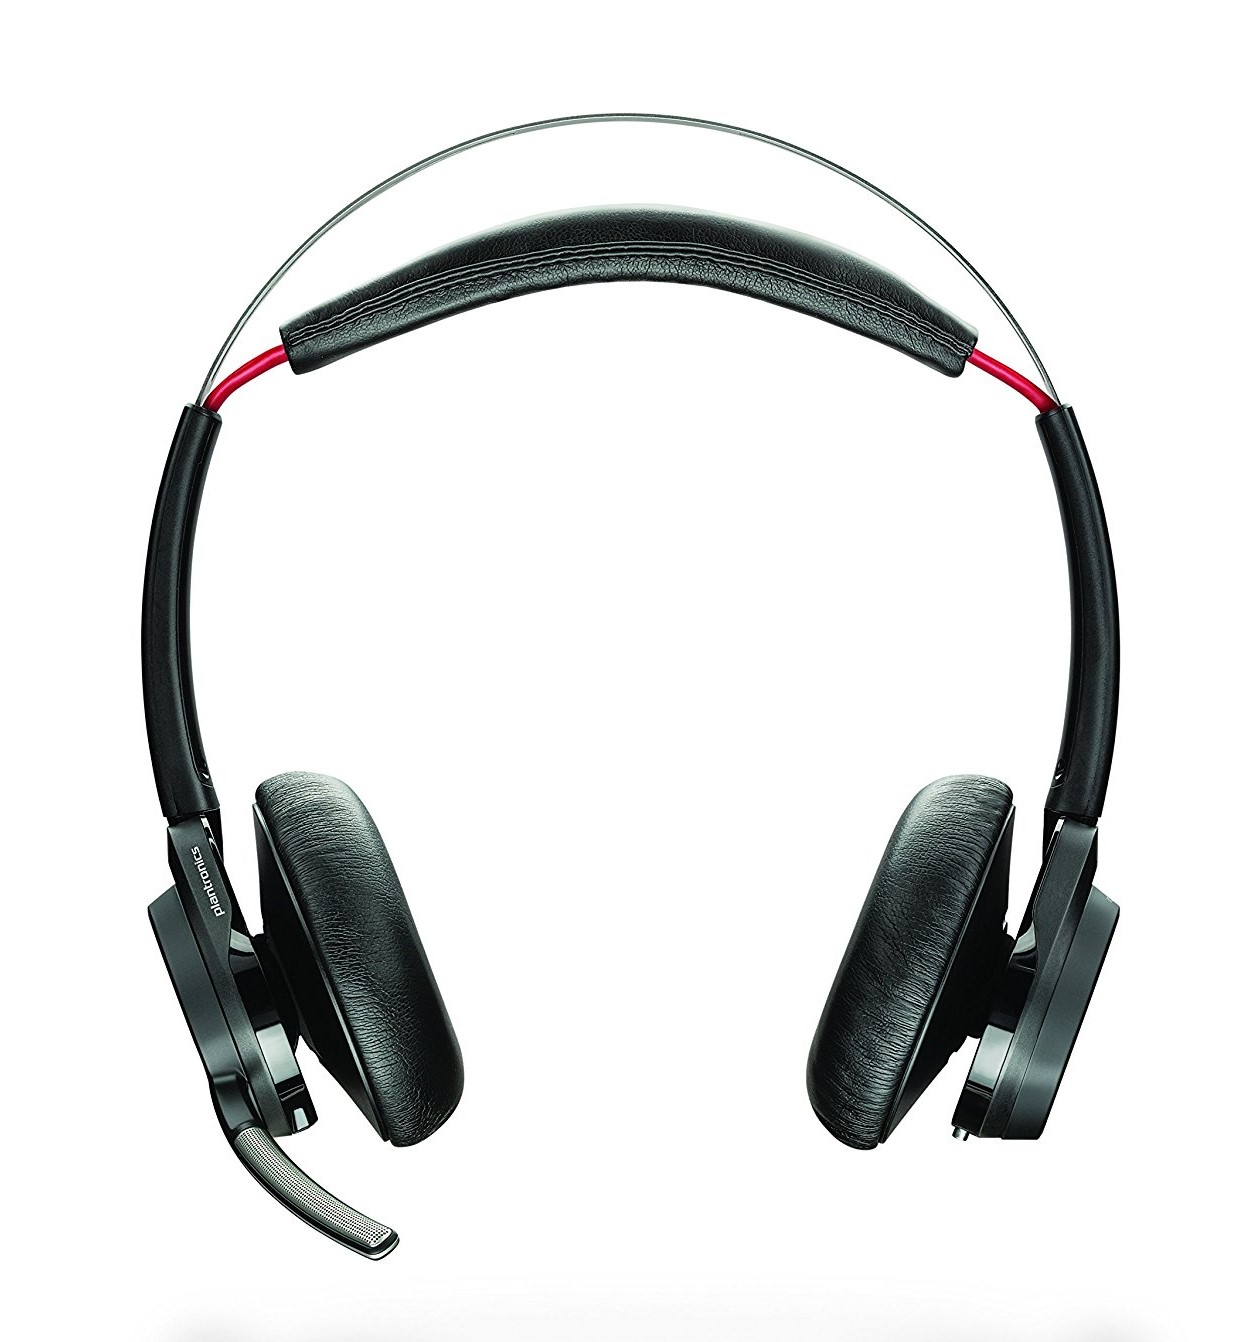 Headsets Plantronics Voyager Focus UC B825 Stereo Bluetooth Headset